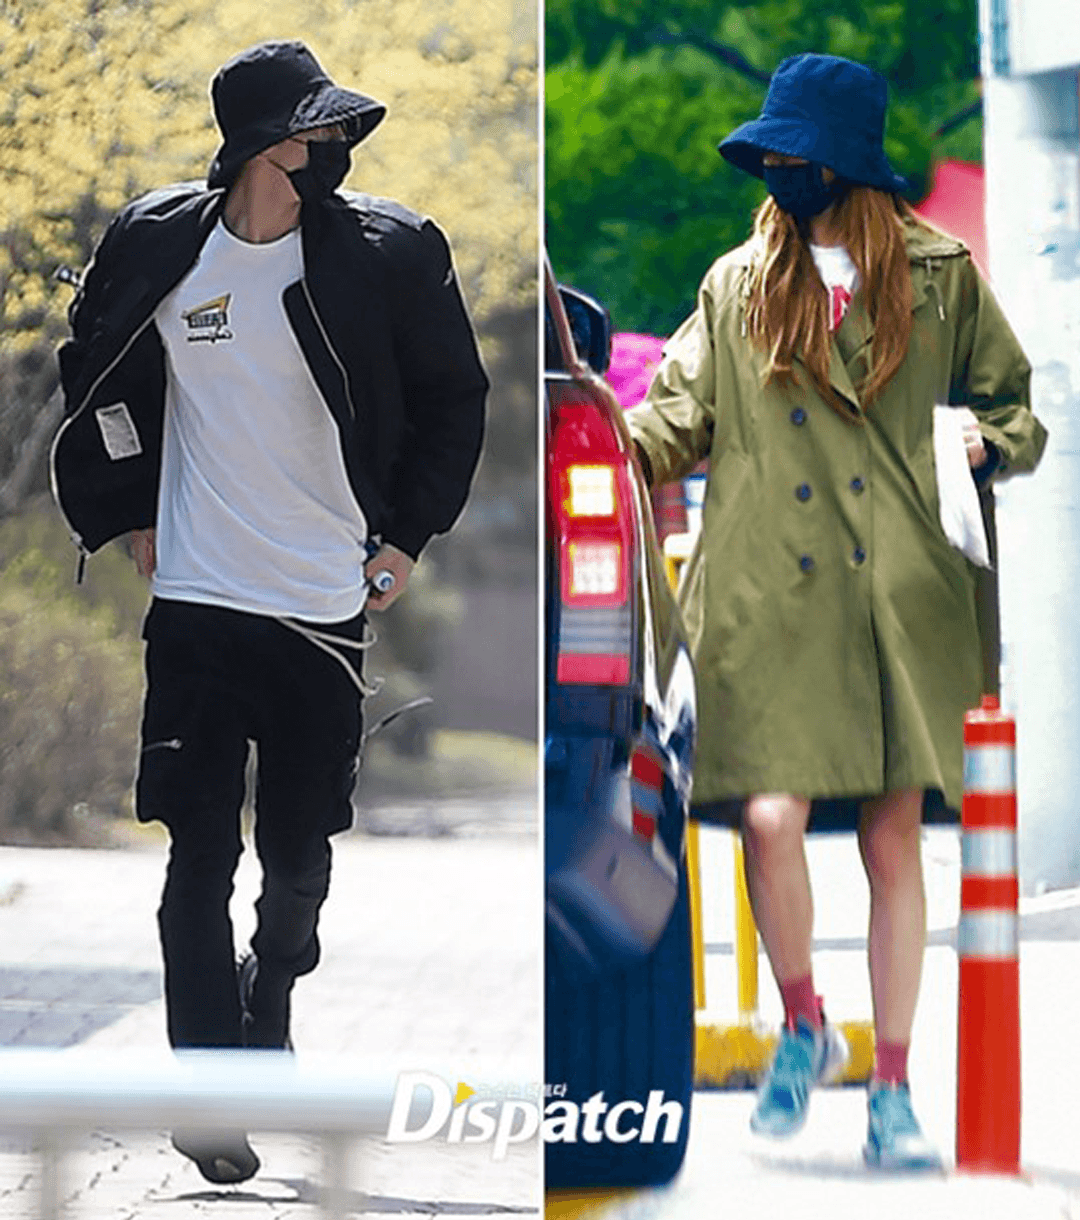 [★BREAKING] Dispatch confirms Lee Sung Kyung and Nam Joo Hyuk are dating with photos